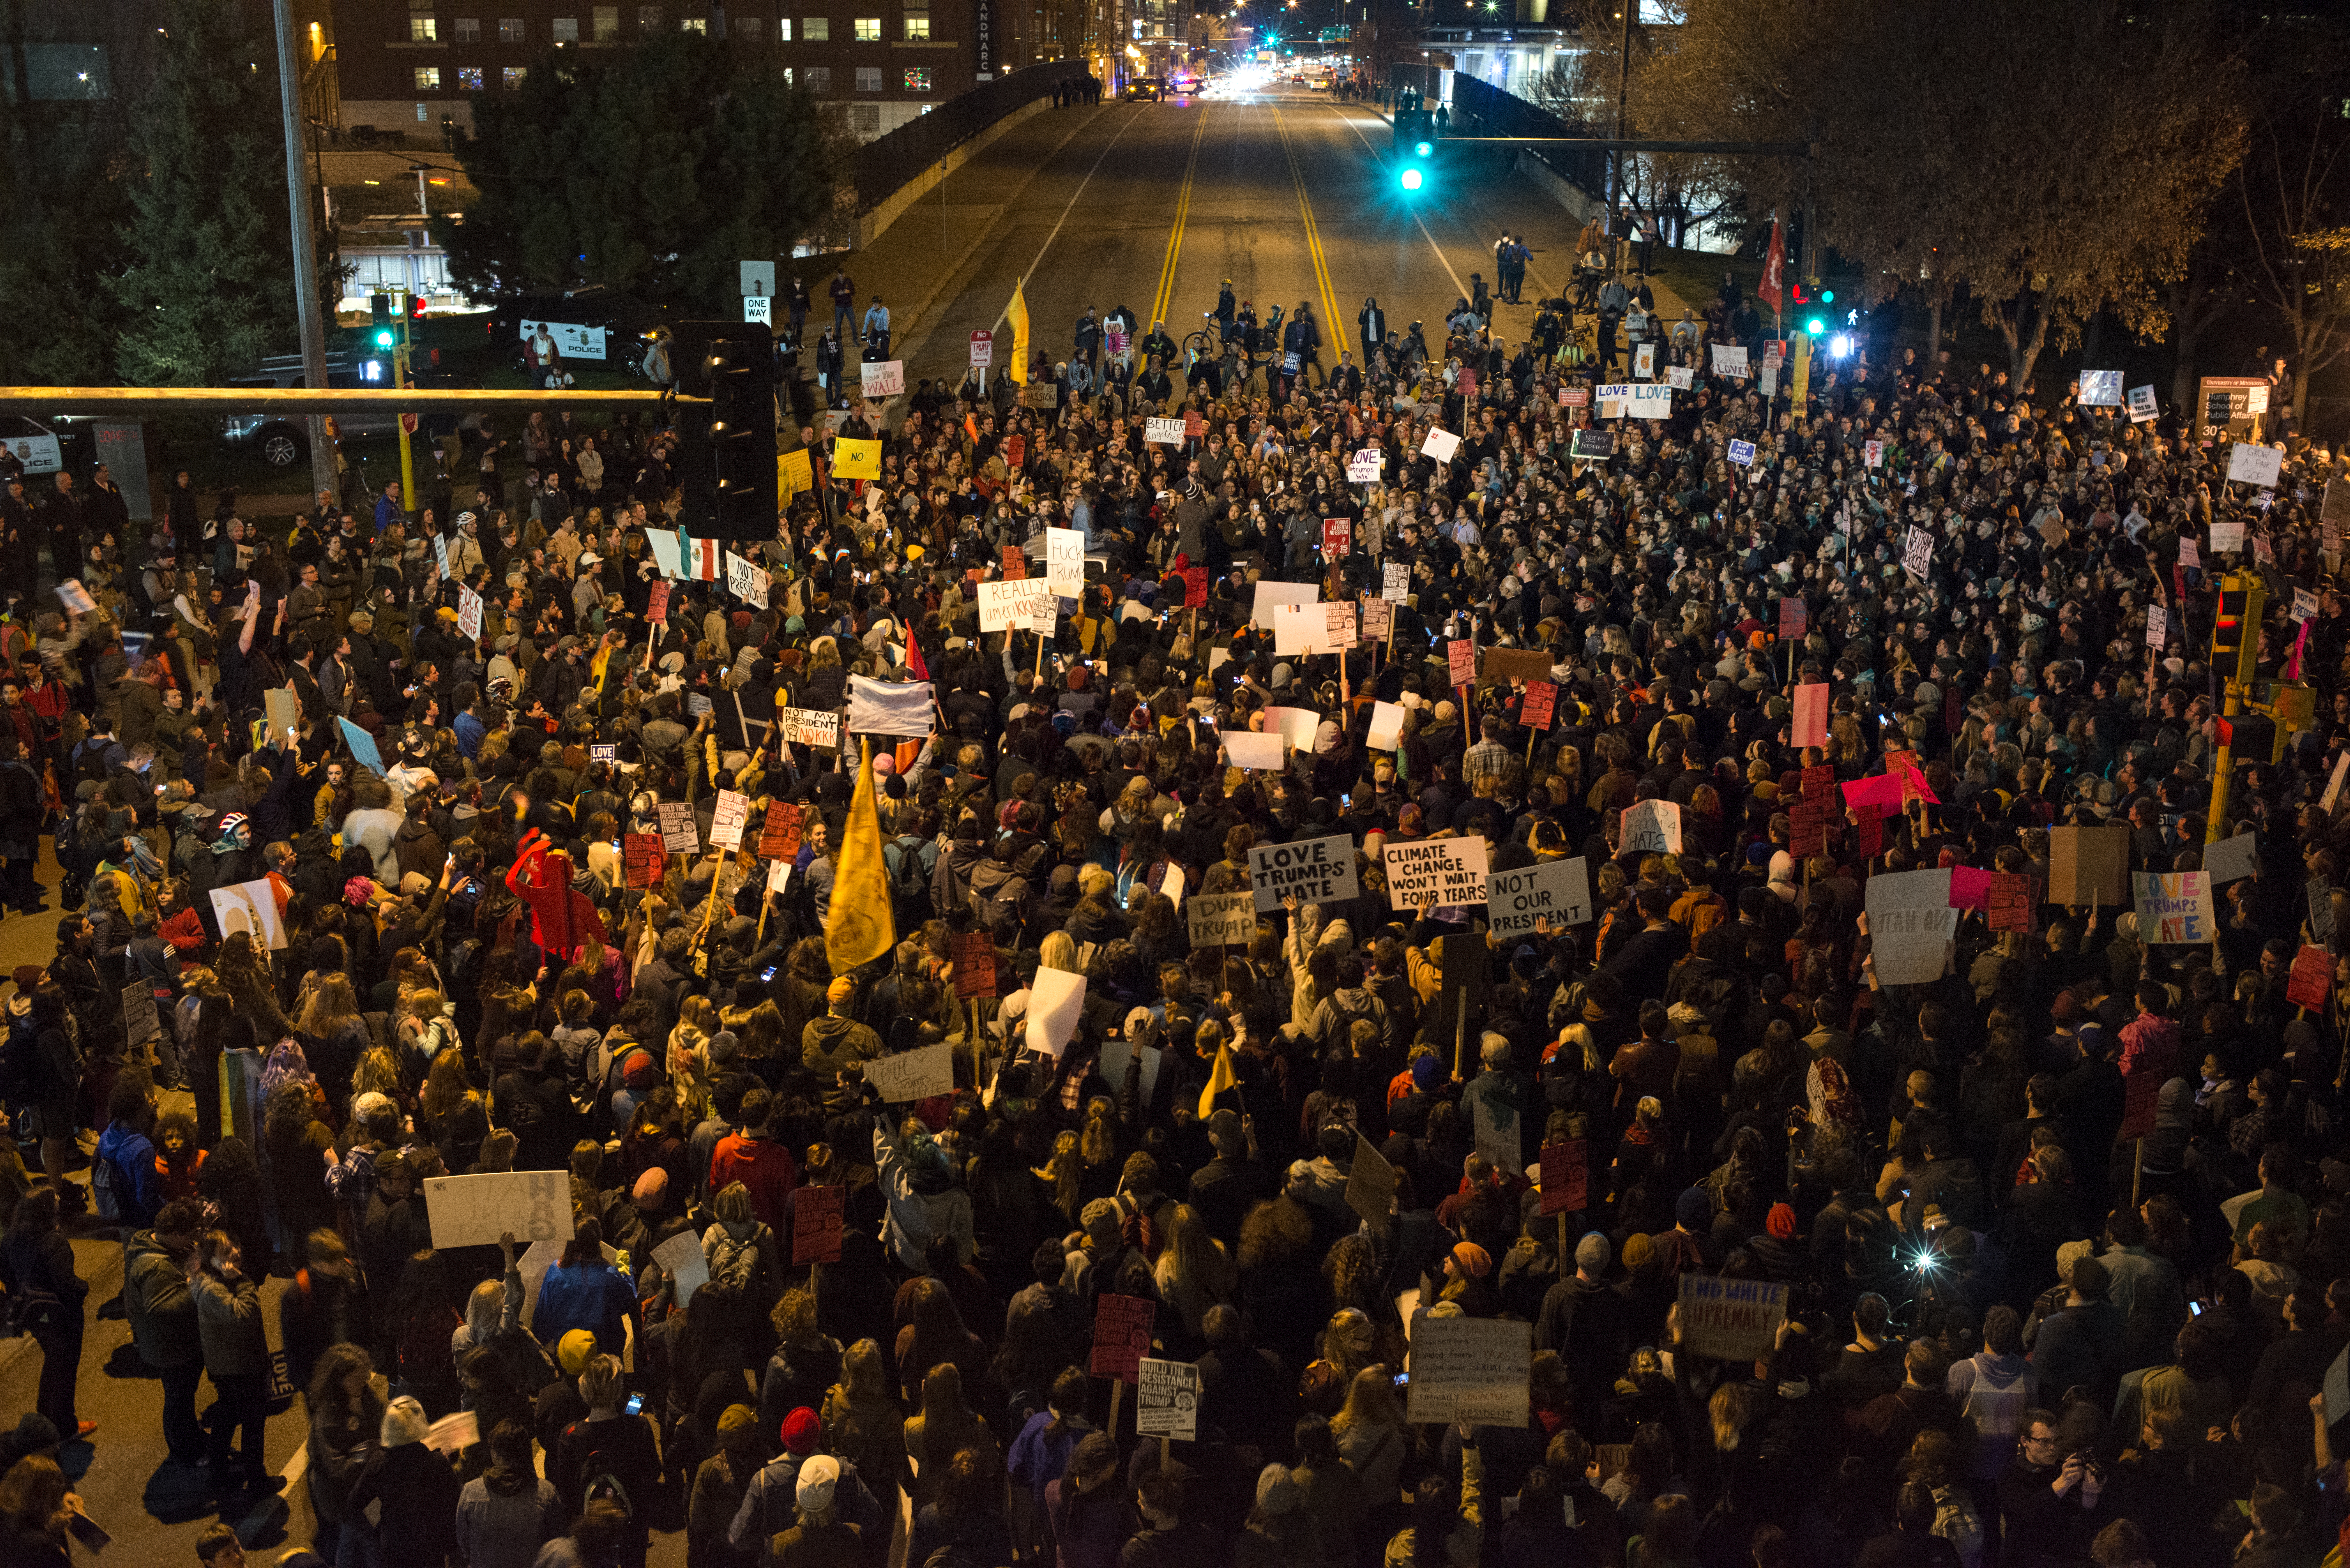 Protesters of President Donald Trump gather in an intersection outside the Humphrey School of Affairs on the campus of the University of Minnesota on Nov. 10, 2016 in Minneapolis, Minnesota.